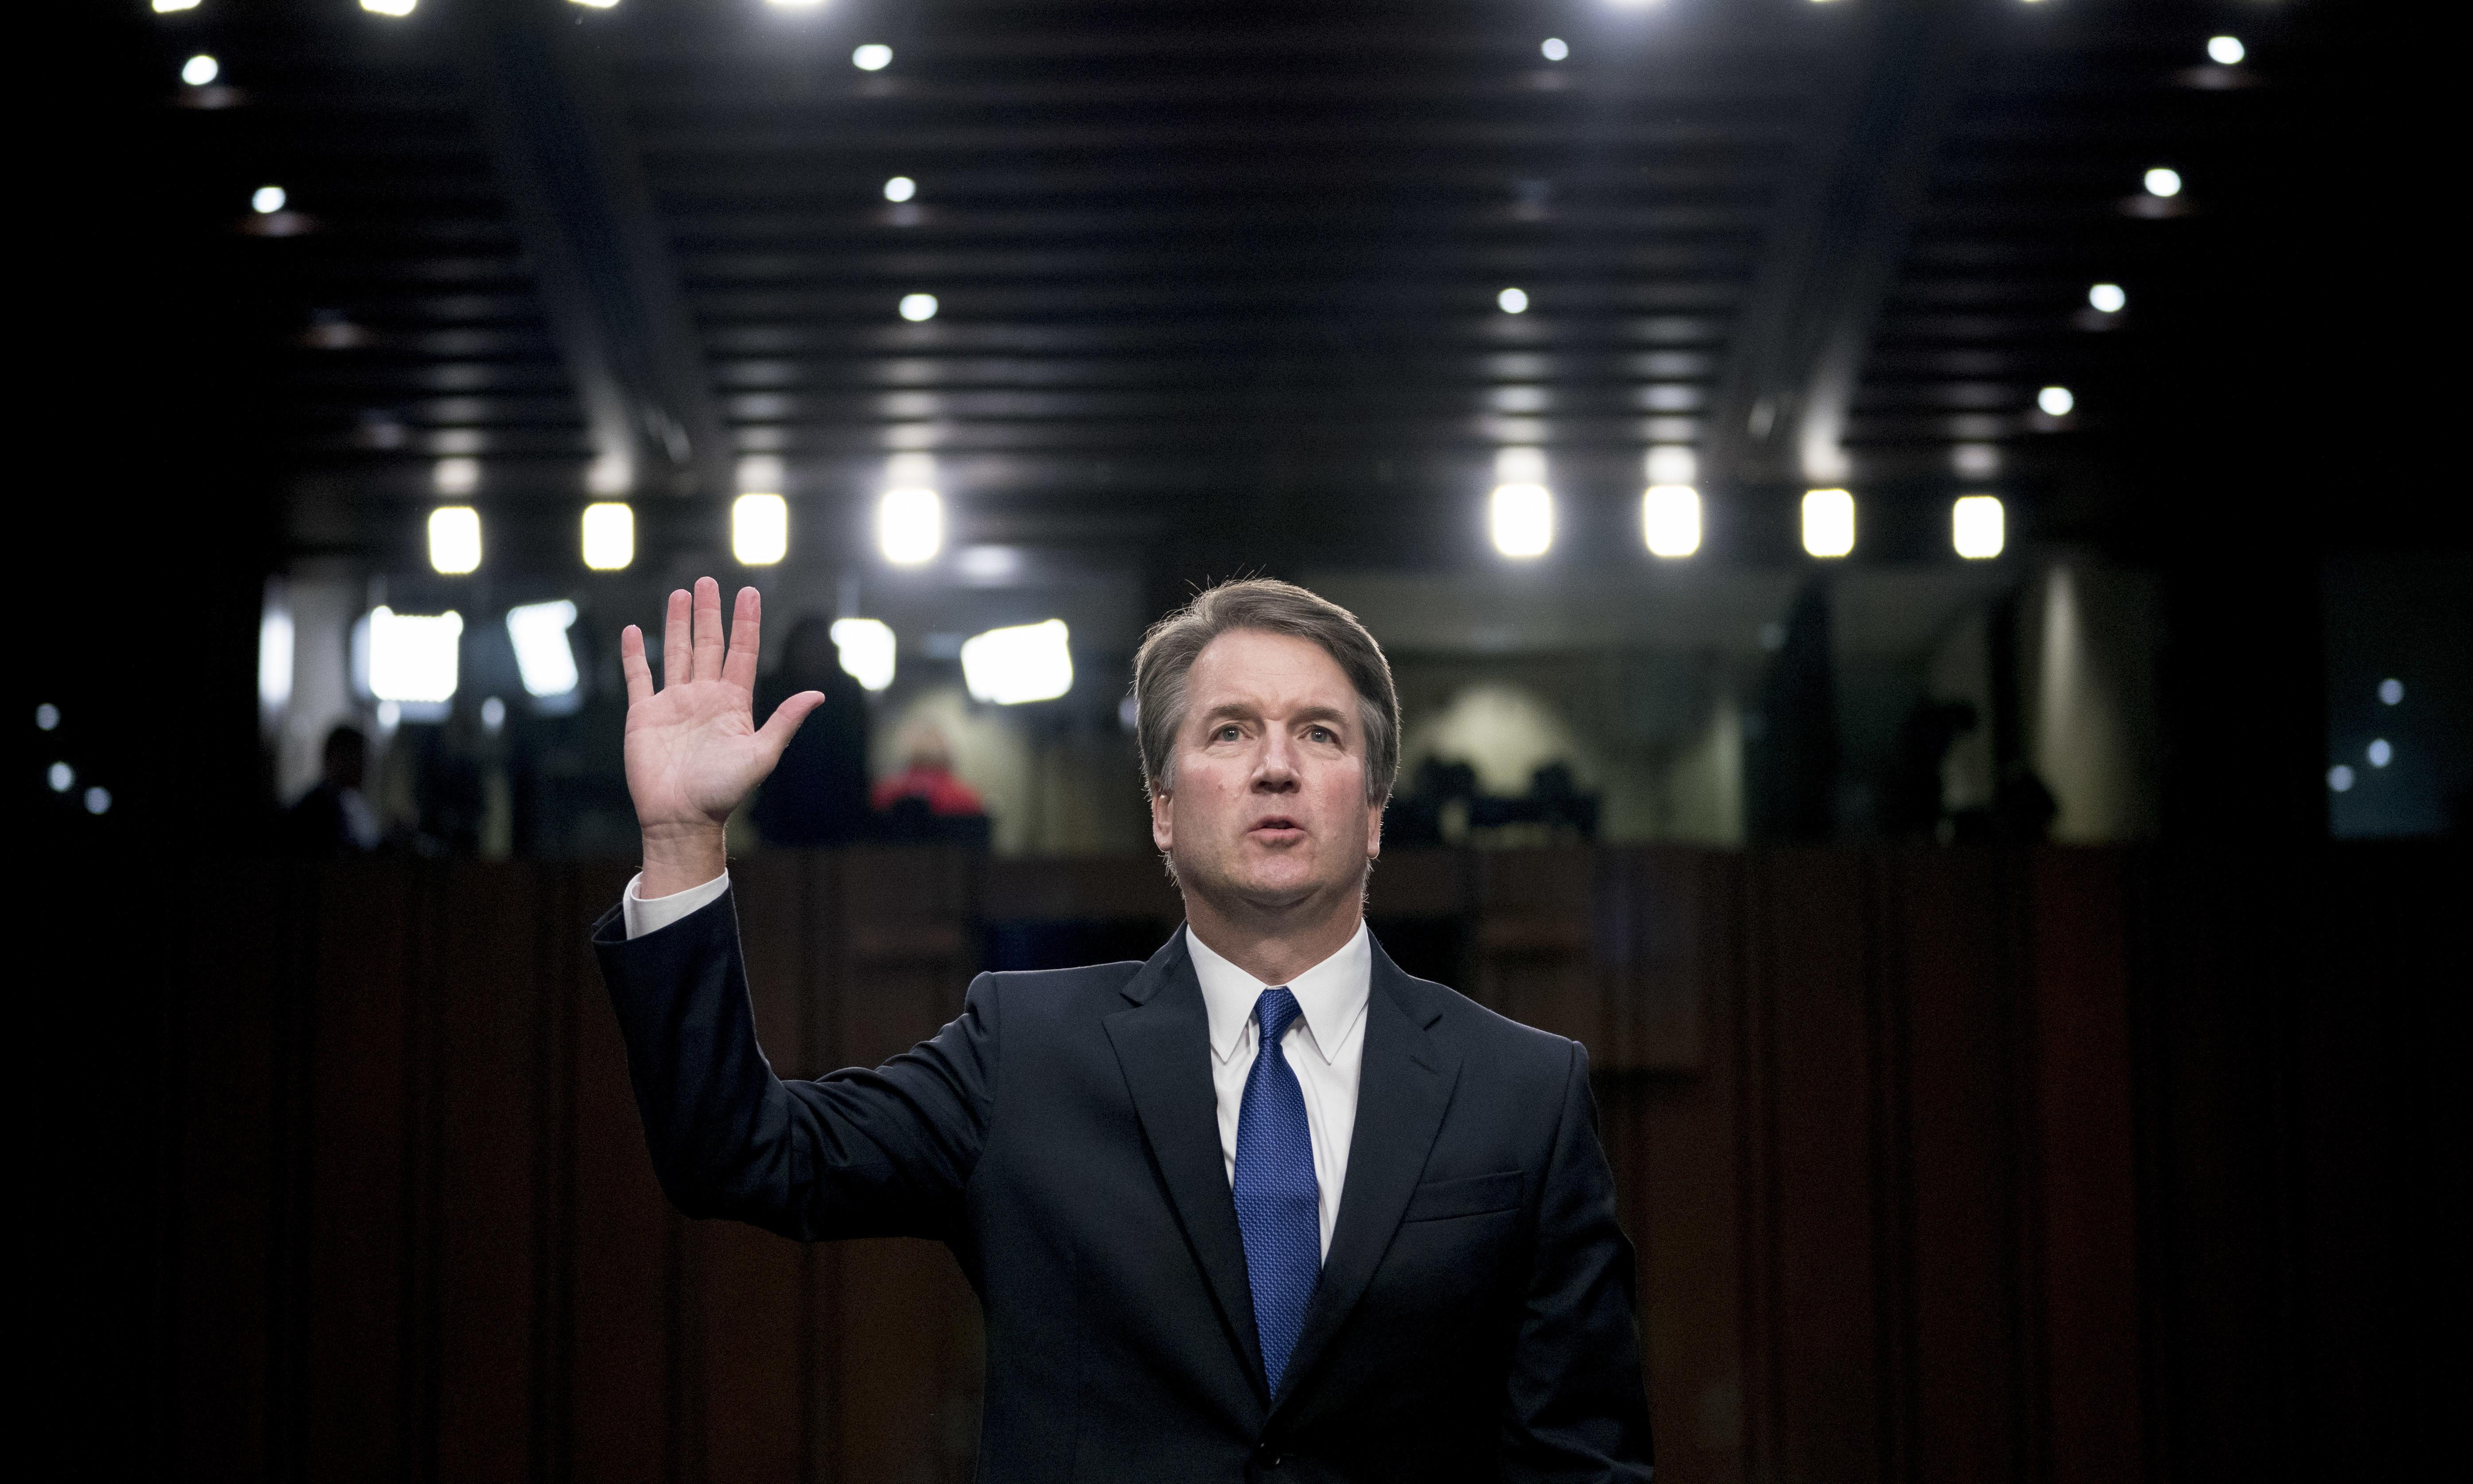 Why I find the Kavanaugh/Ford case so unsettling